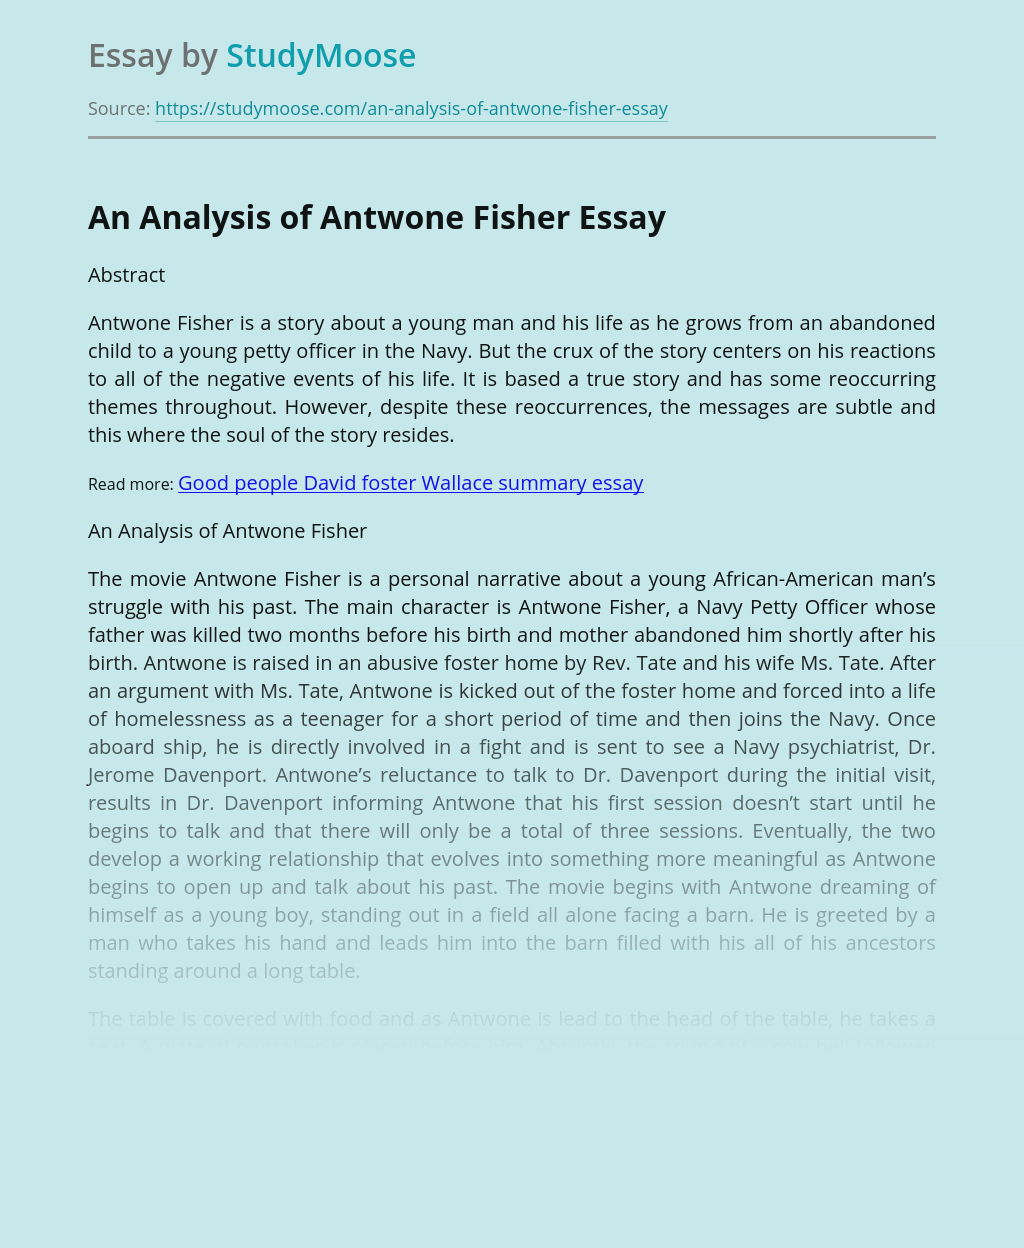 An Analysis of Antwone Fisher